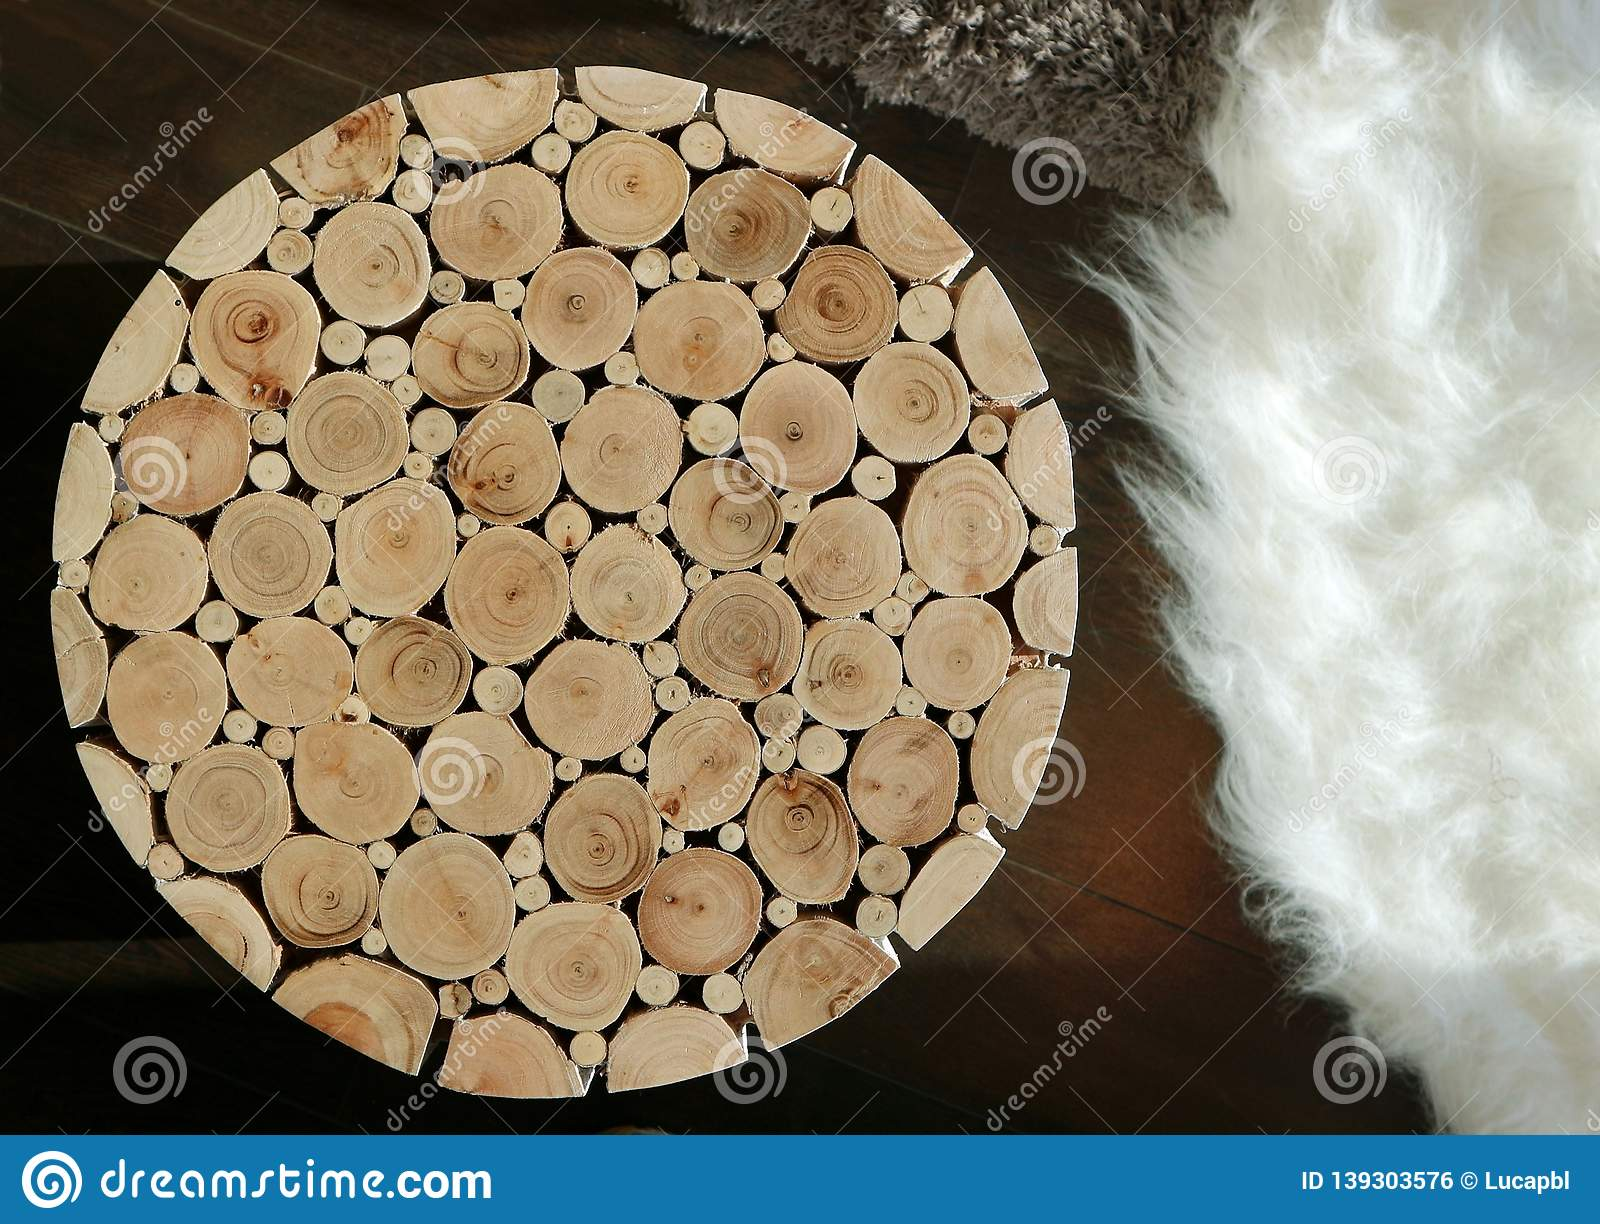 Rustic Small Table Made Of Wooden Circles Of Different Sizes On A